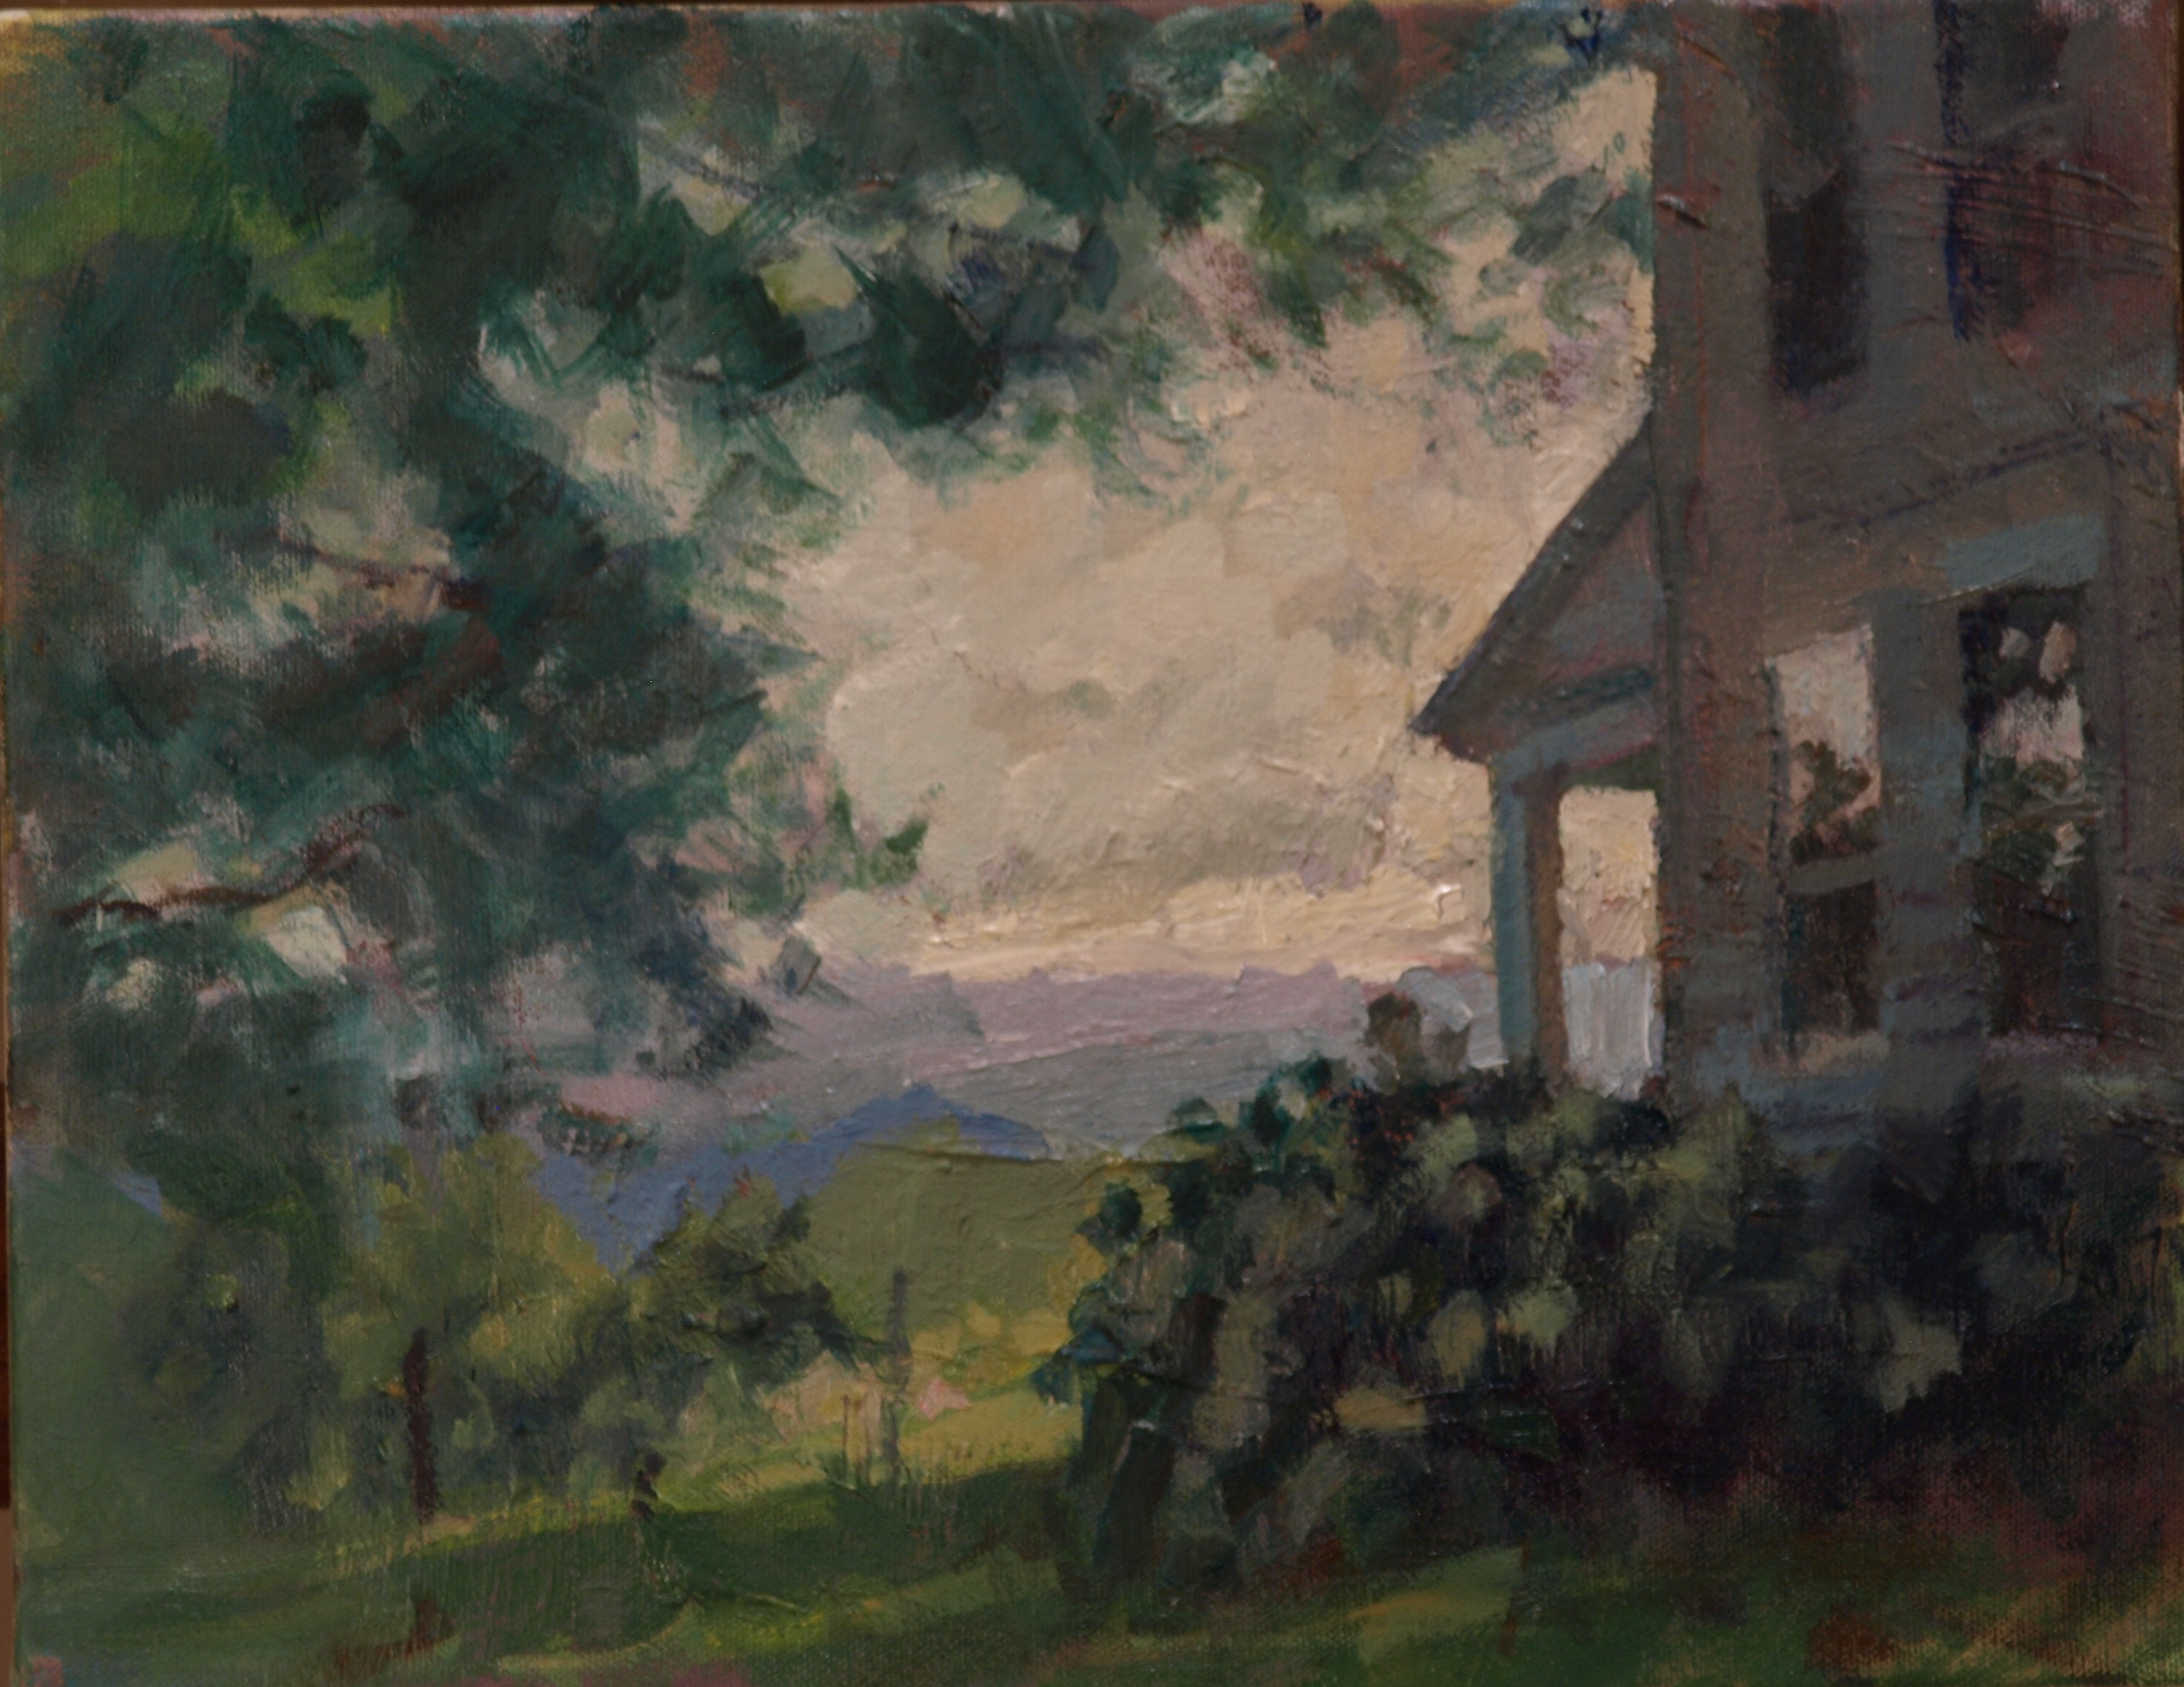 Phil's House, Oil on Canvas, 11 x 14 Inches, by Susan Grisell, $300